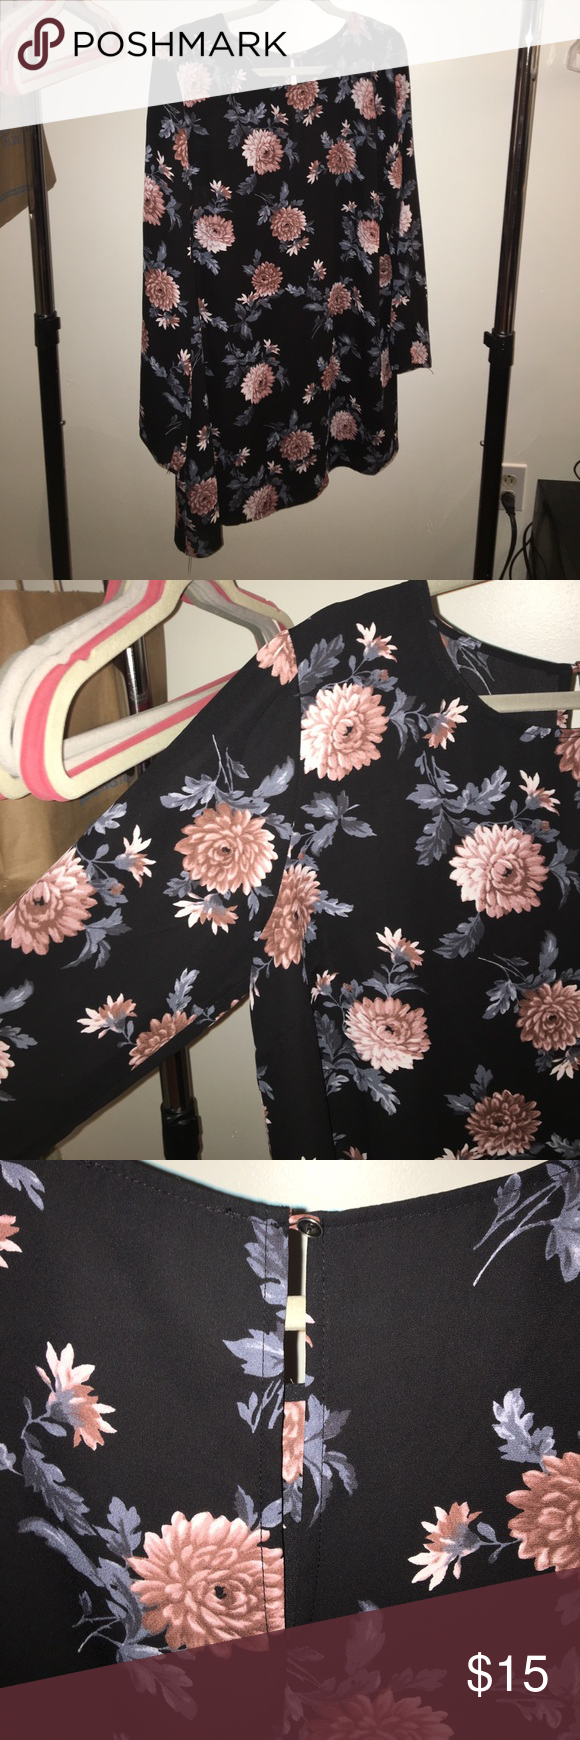 Long Sleeve Floral Blouse Dress Long sleeve floral dress. The material is tight fitting but the dress itself is loose. Small opening in the back as pictured above. Forever 21 Dresses Long Sleeve